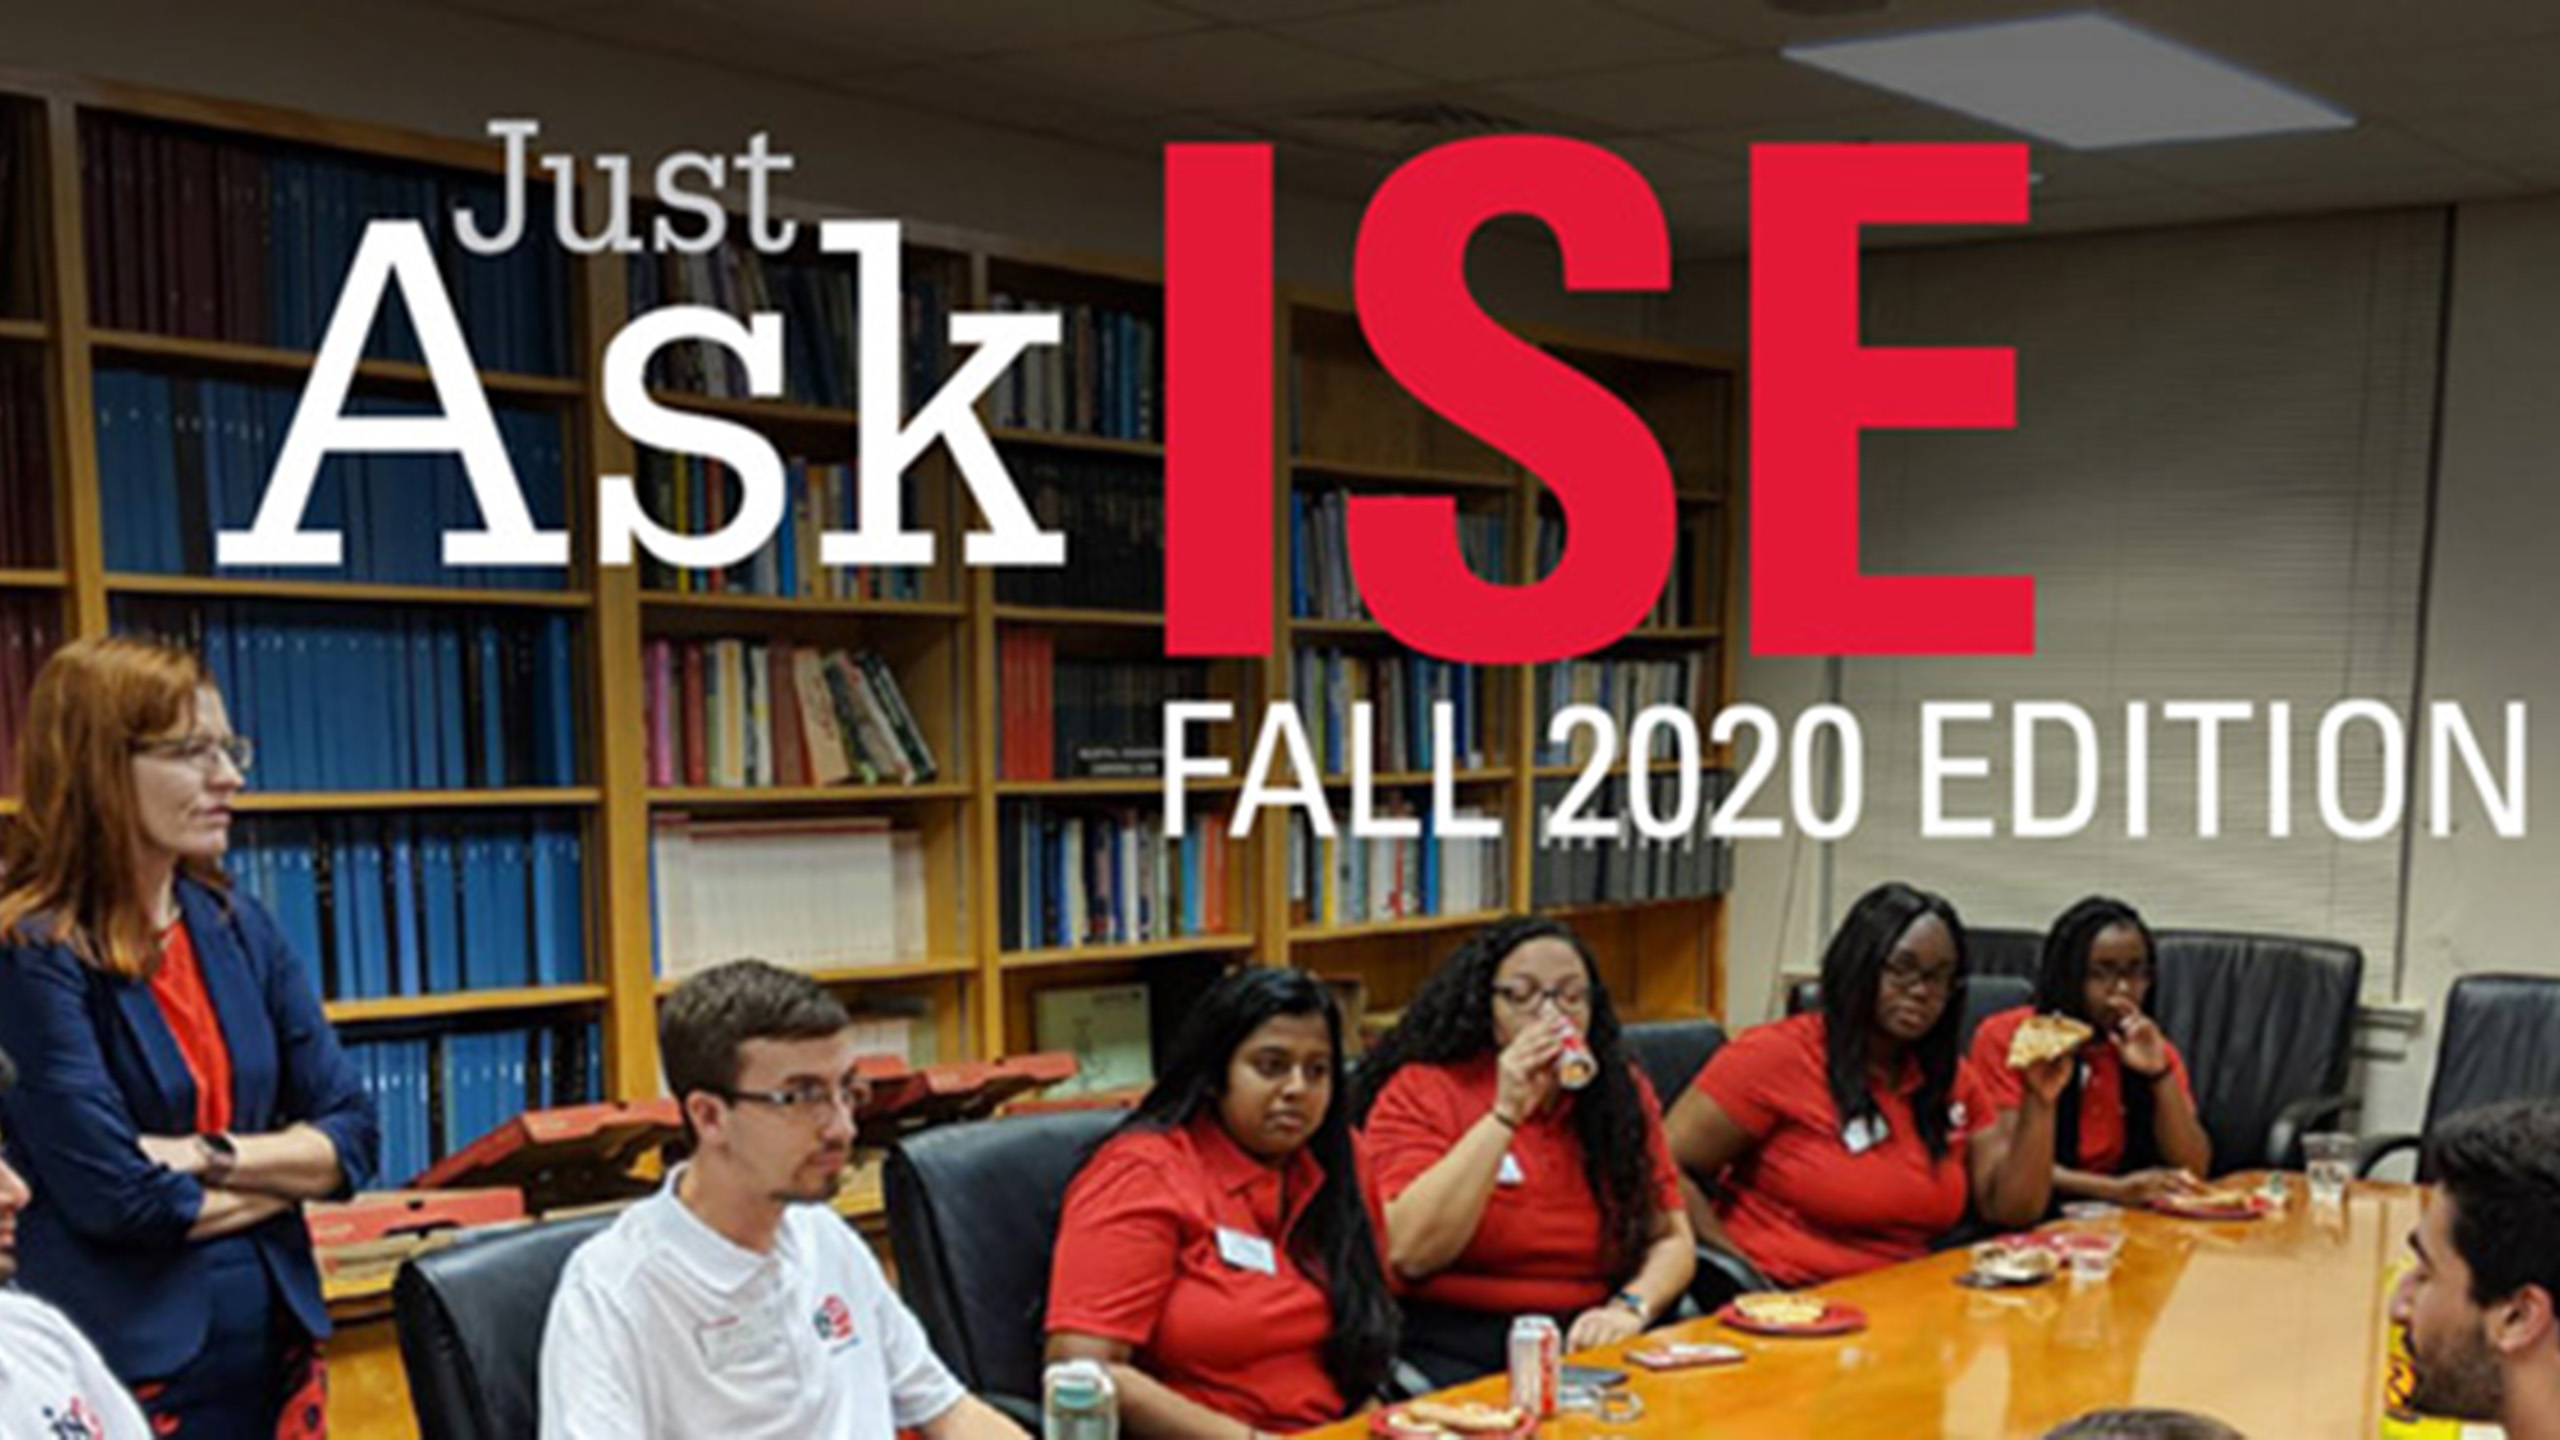 Just Ask ISE | Julie Swann